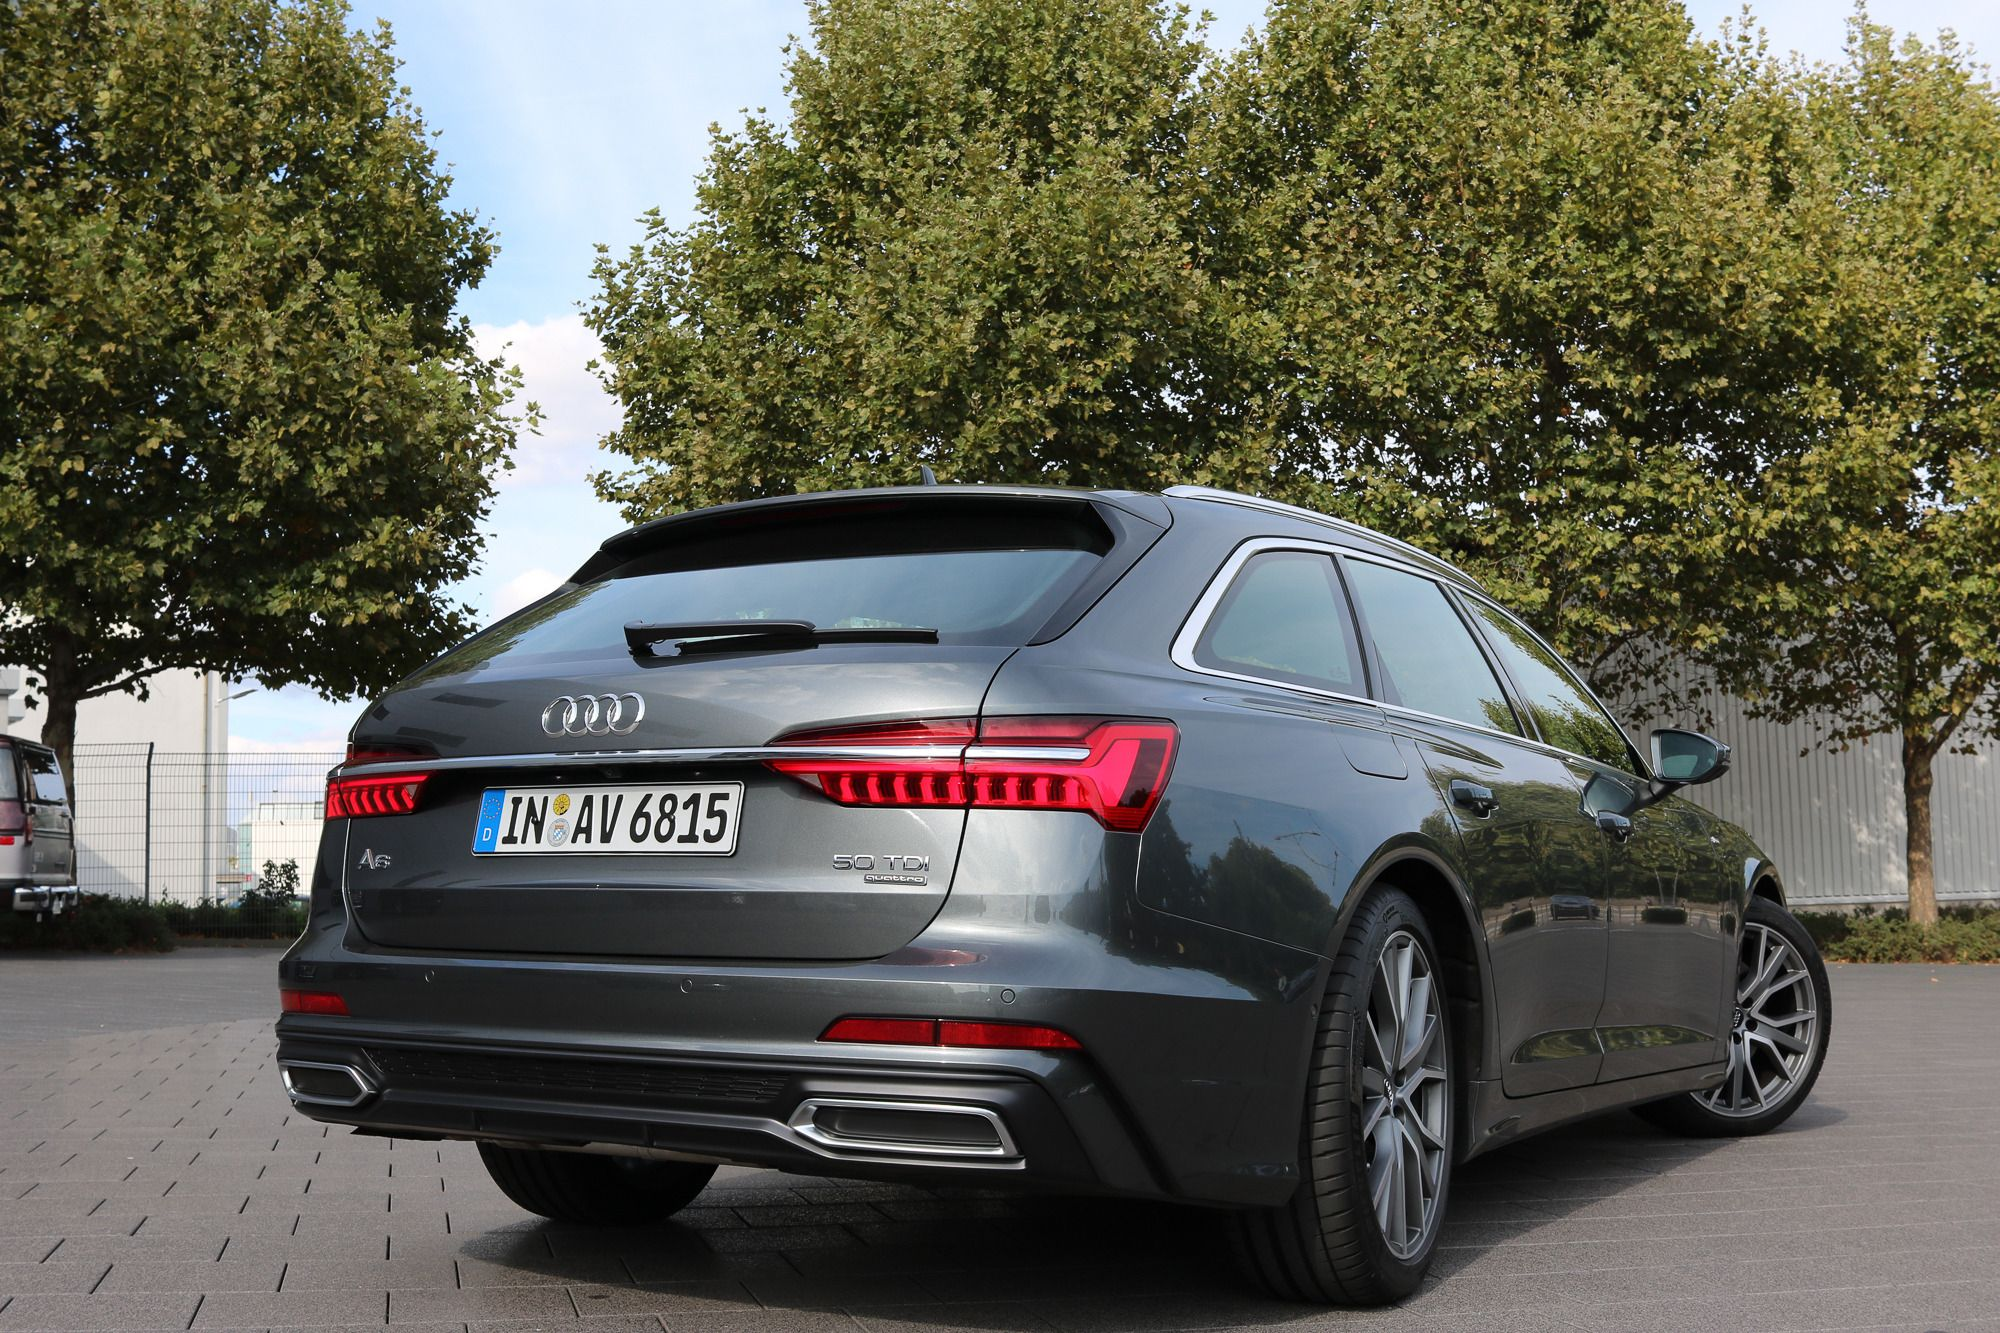 2019 Audi Allroad Check More At Http Www Best Cars Club 2018 04 30 2019 Audi Allroad